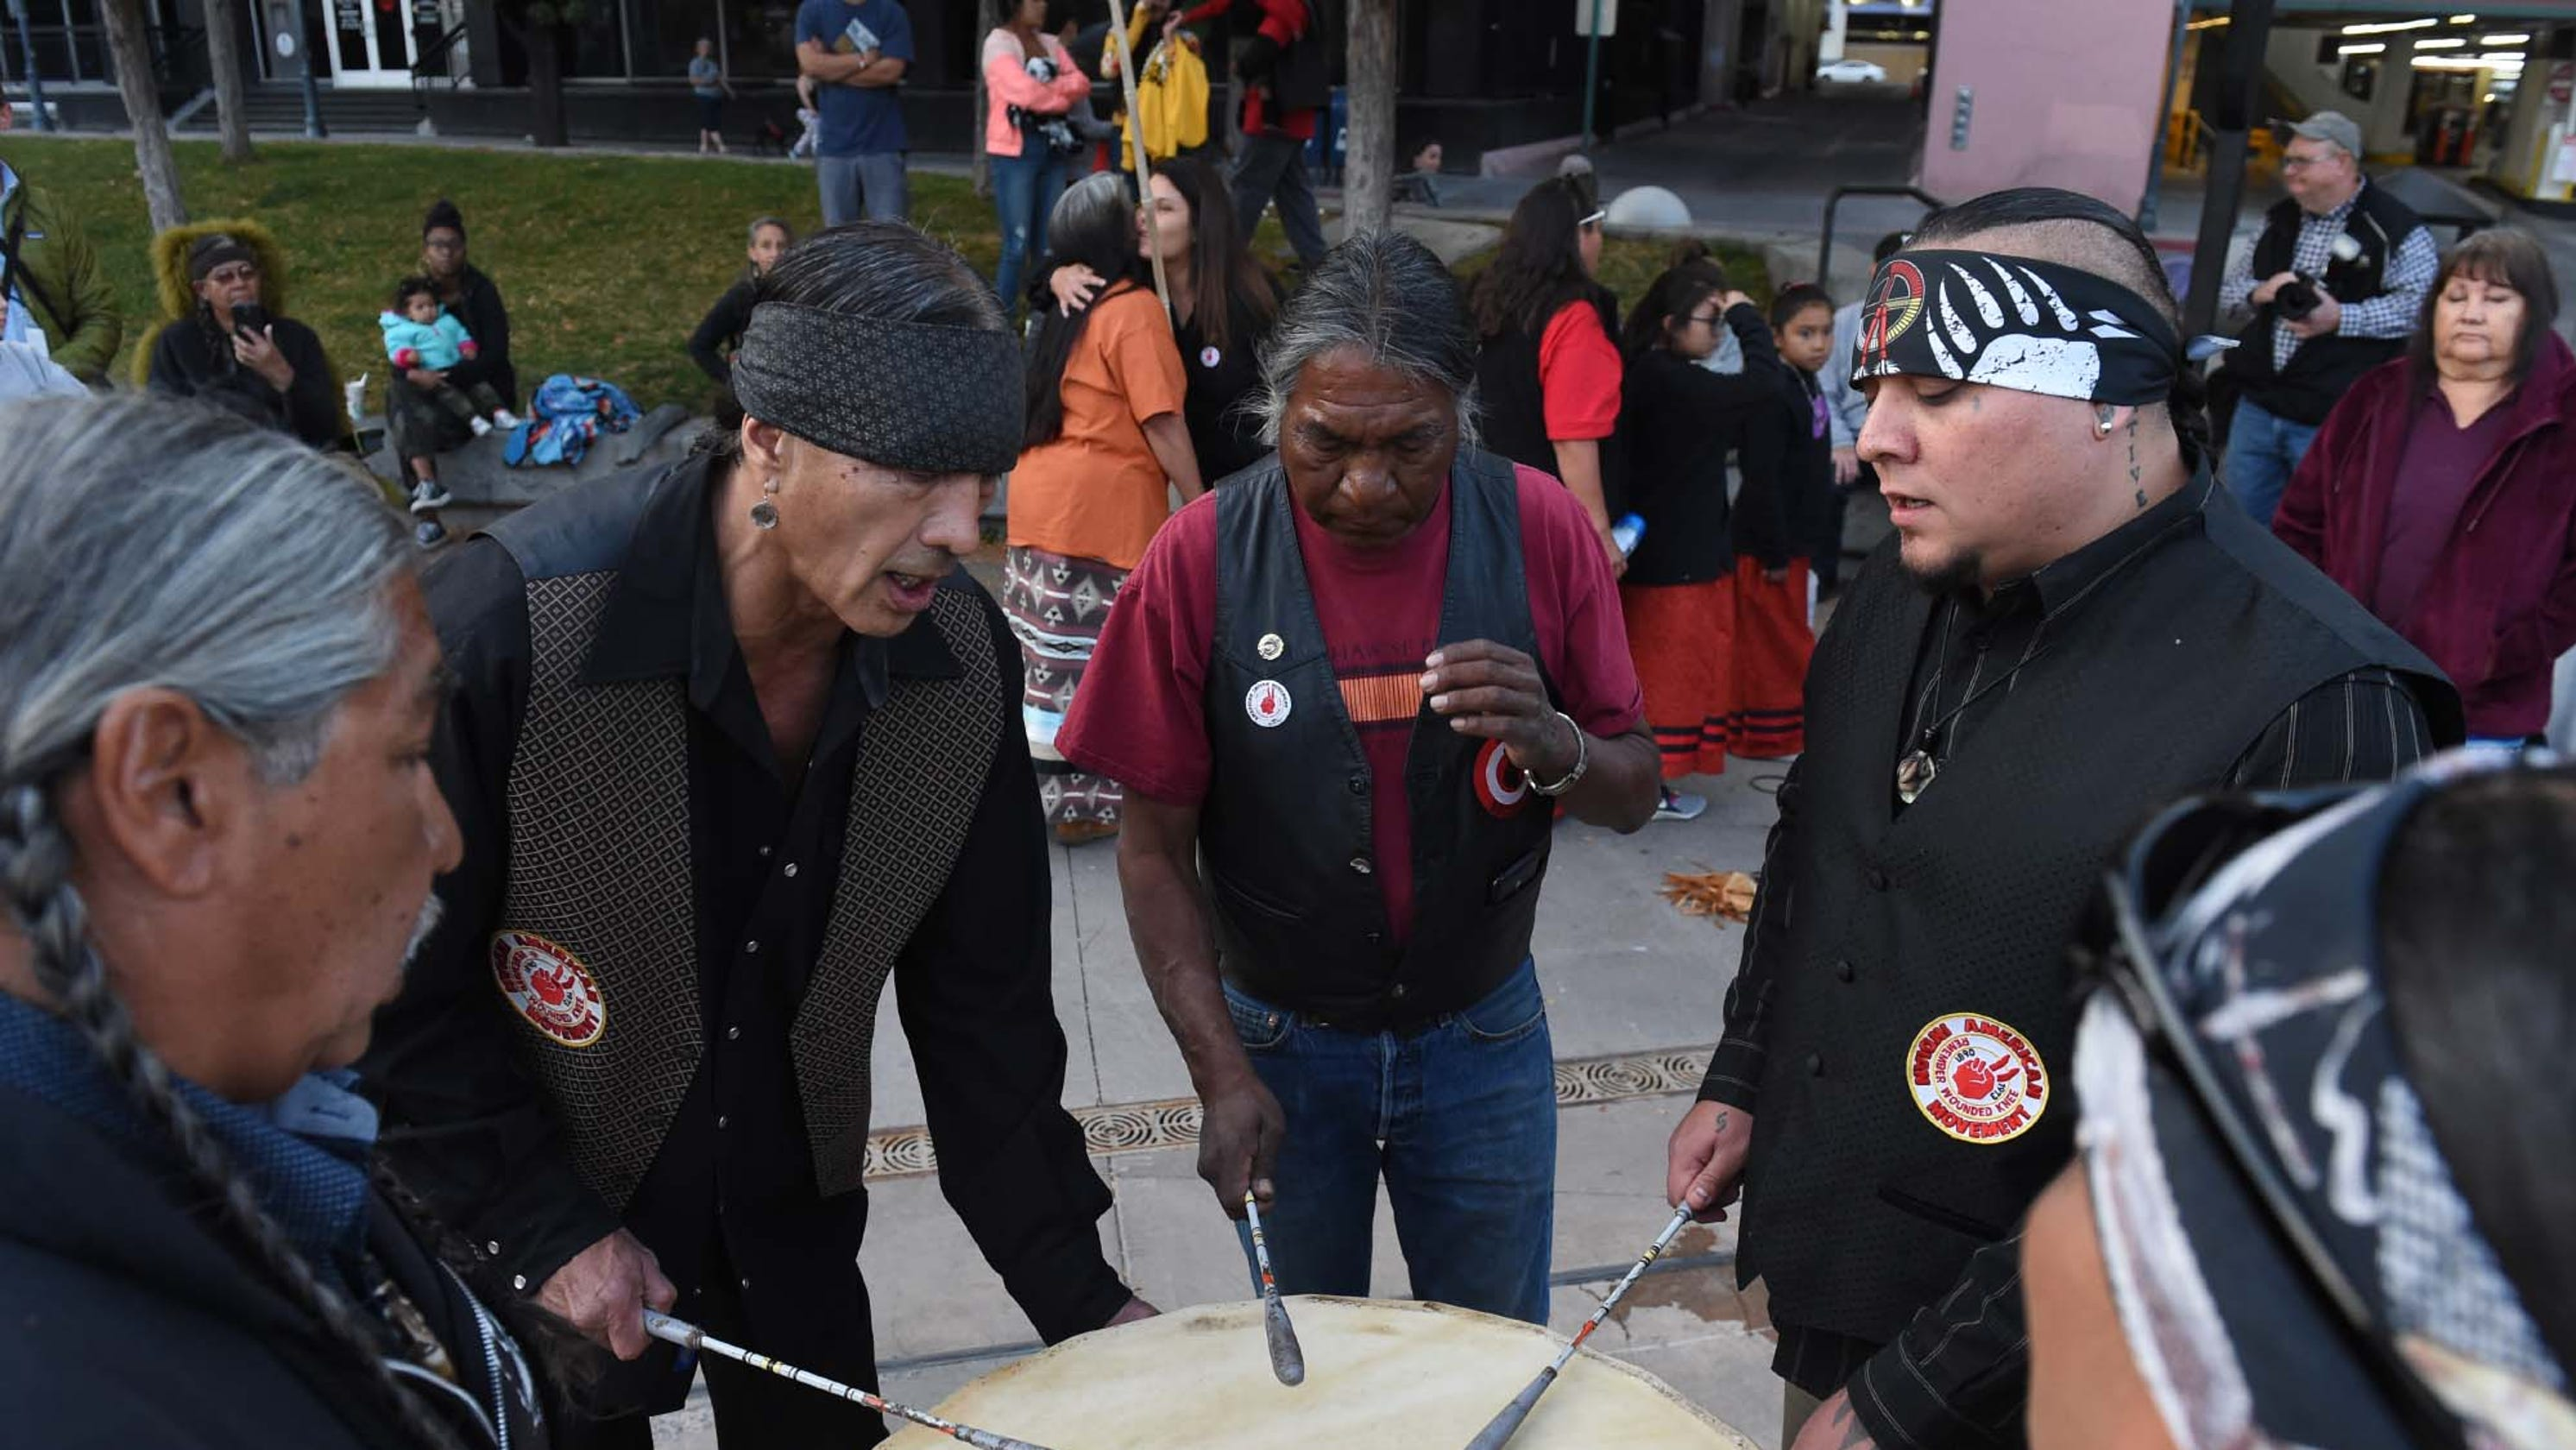 Columbus Day should be replaced with Indigenous Peoples' Day